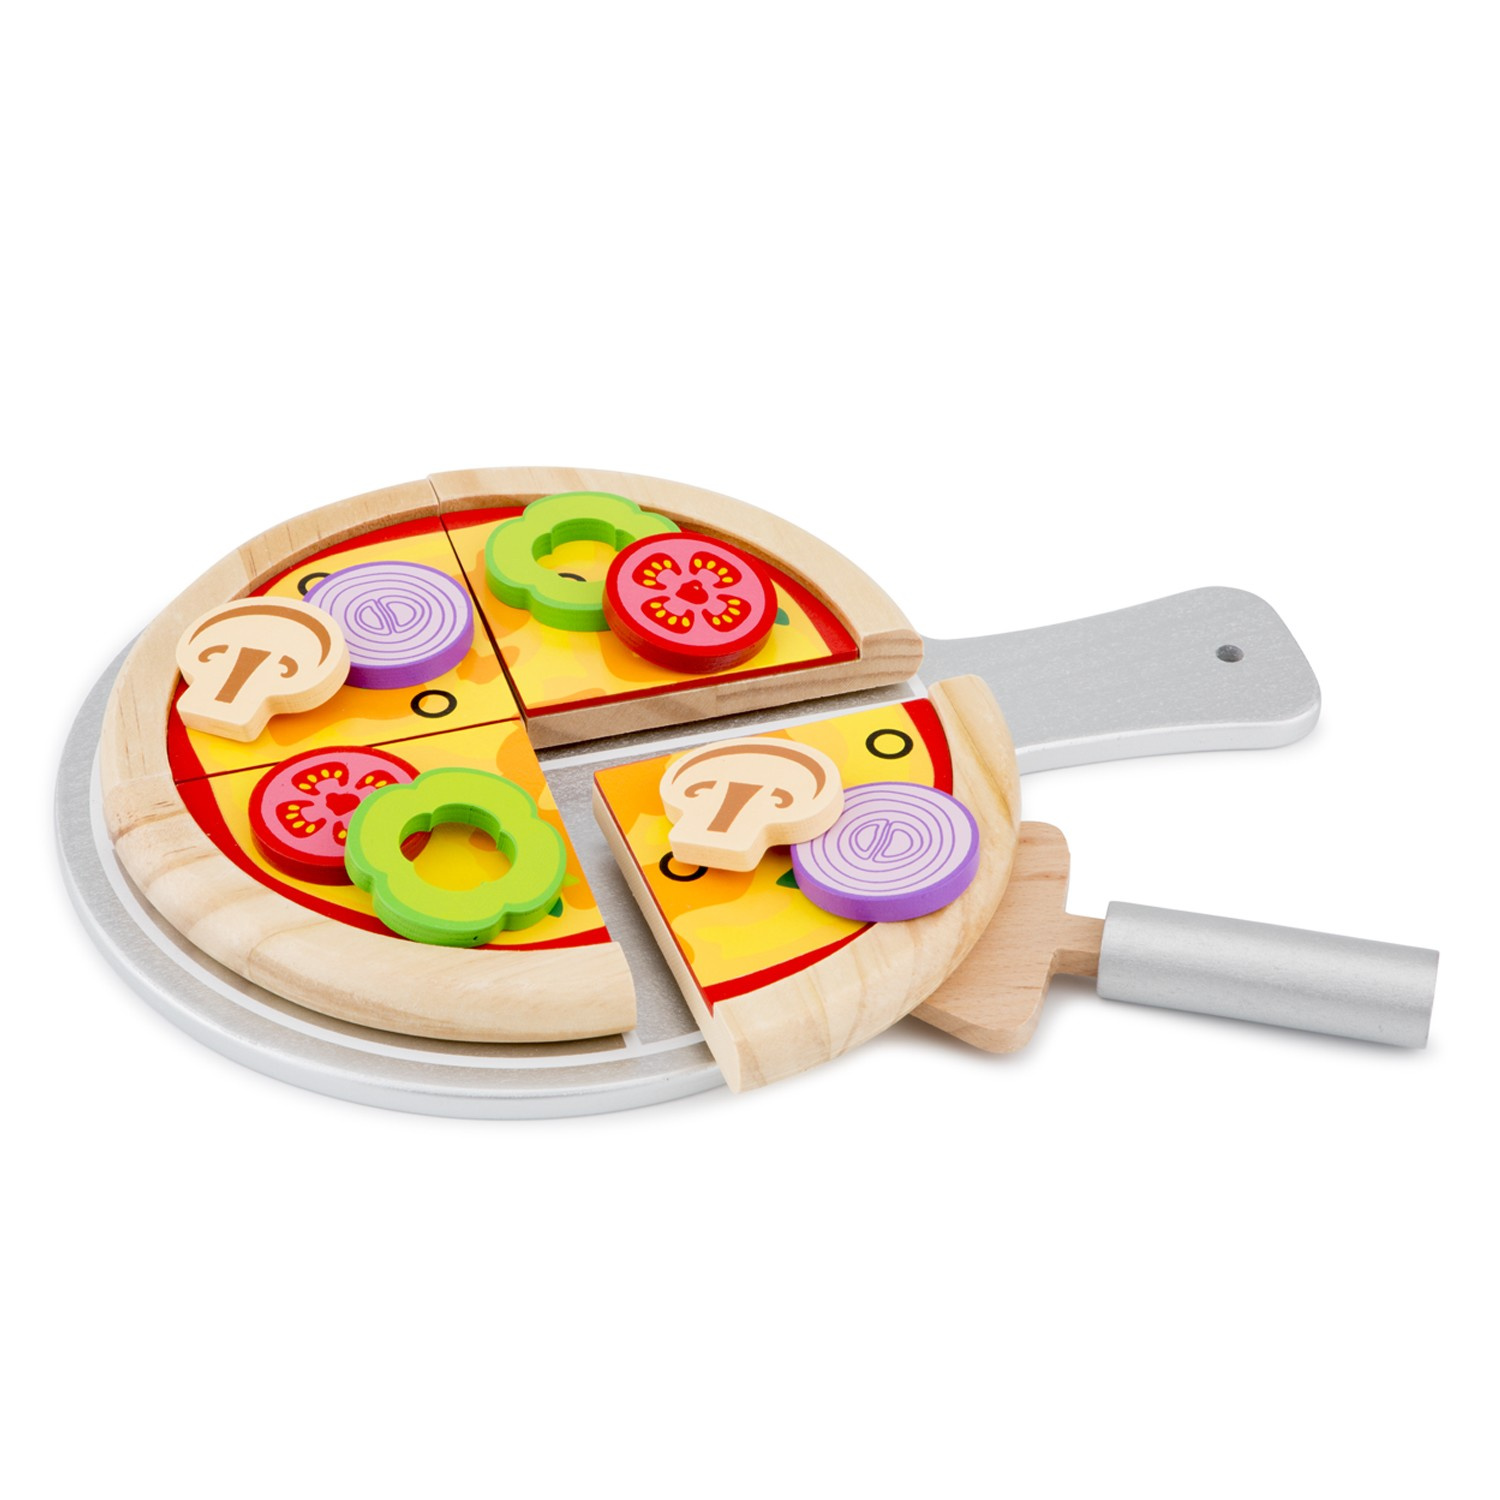 New Classic Toys Pizza Set Junior 28 Cm Wood 14 Piece Internet Toys